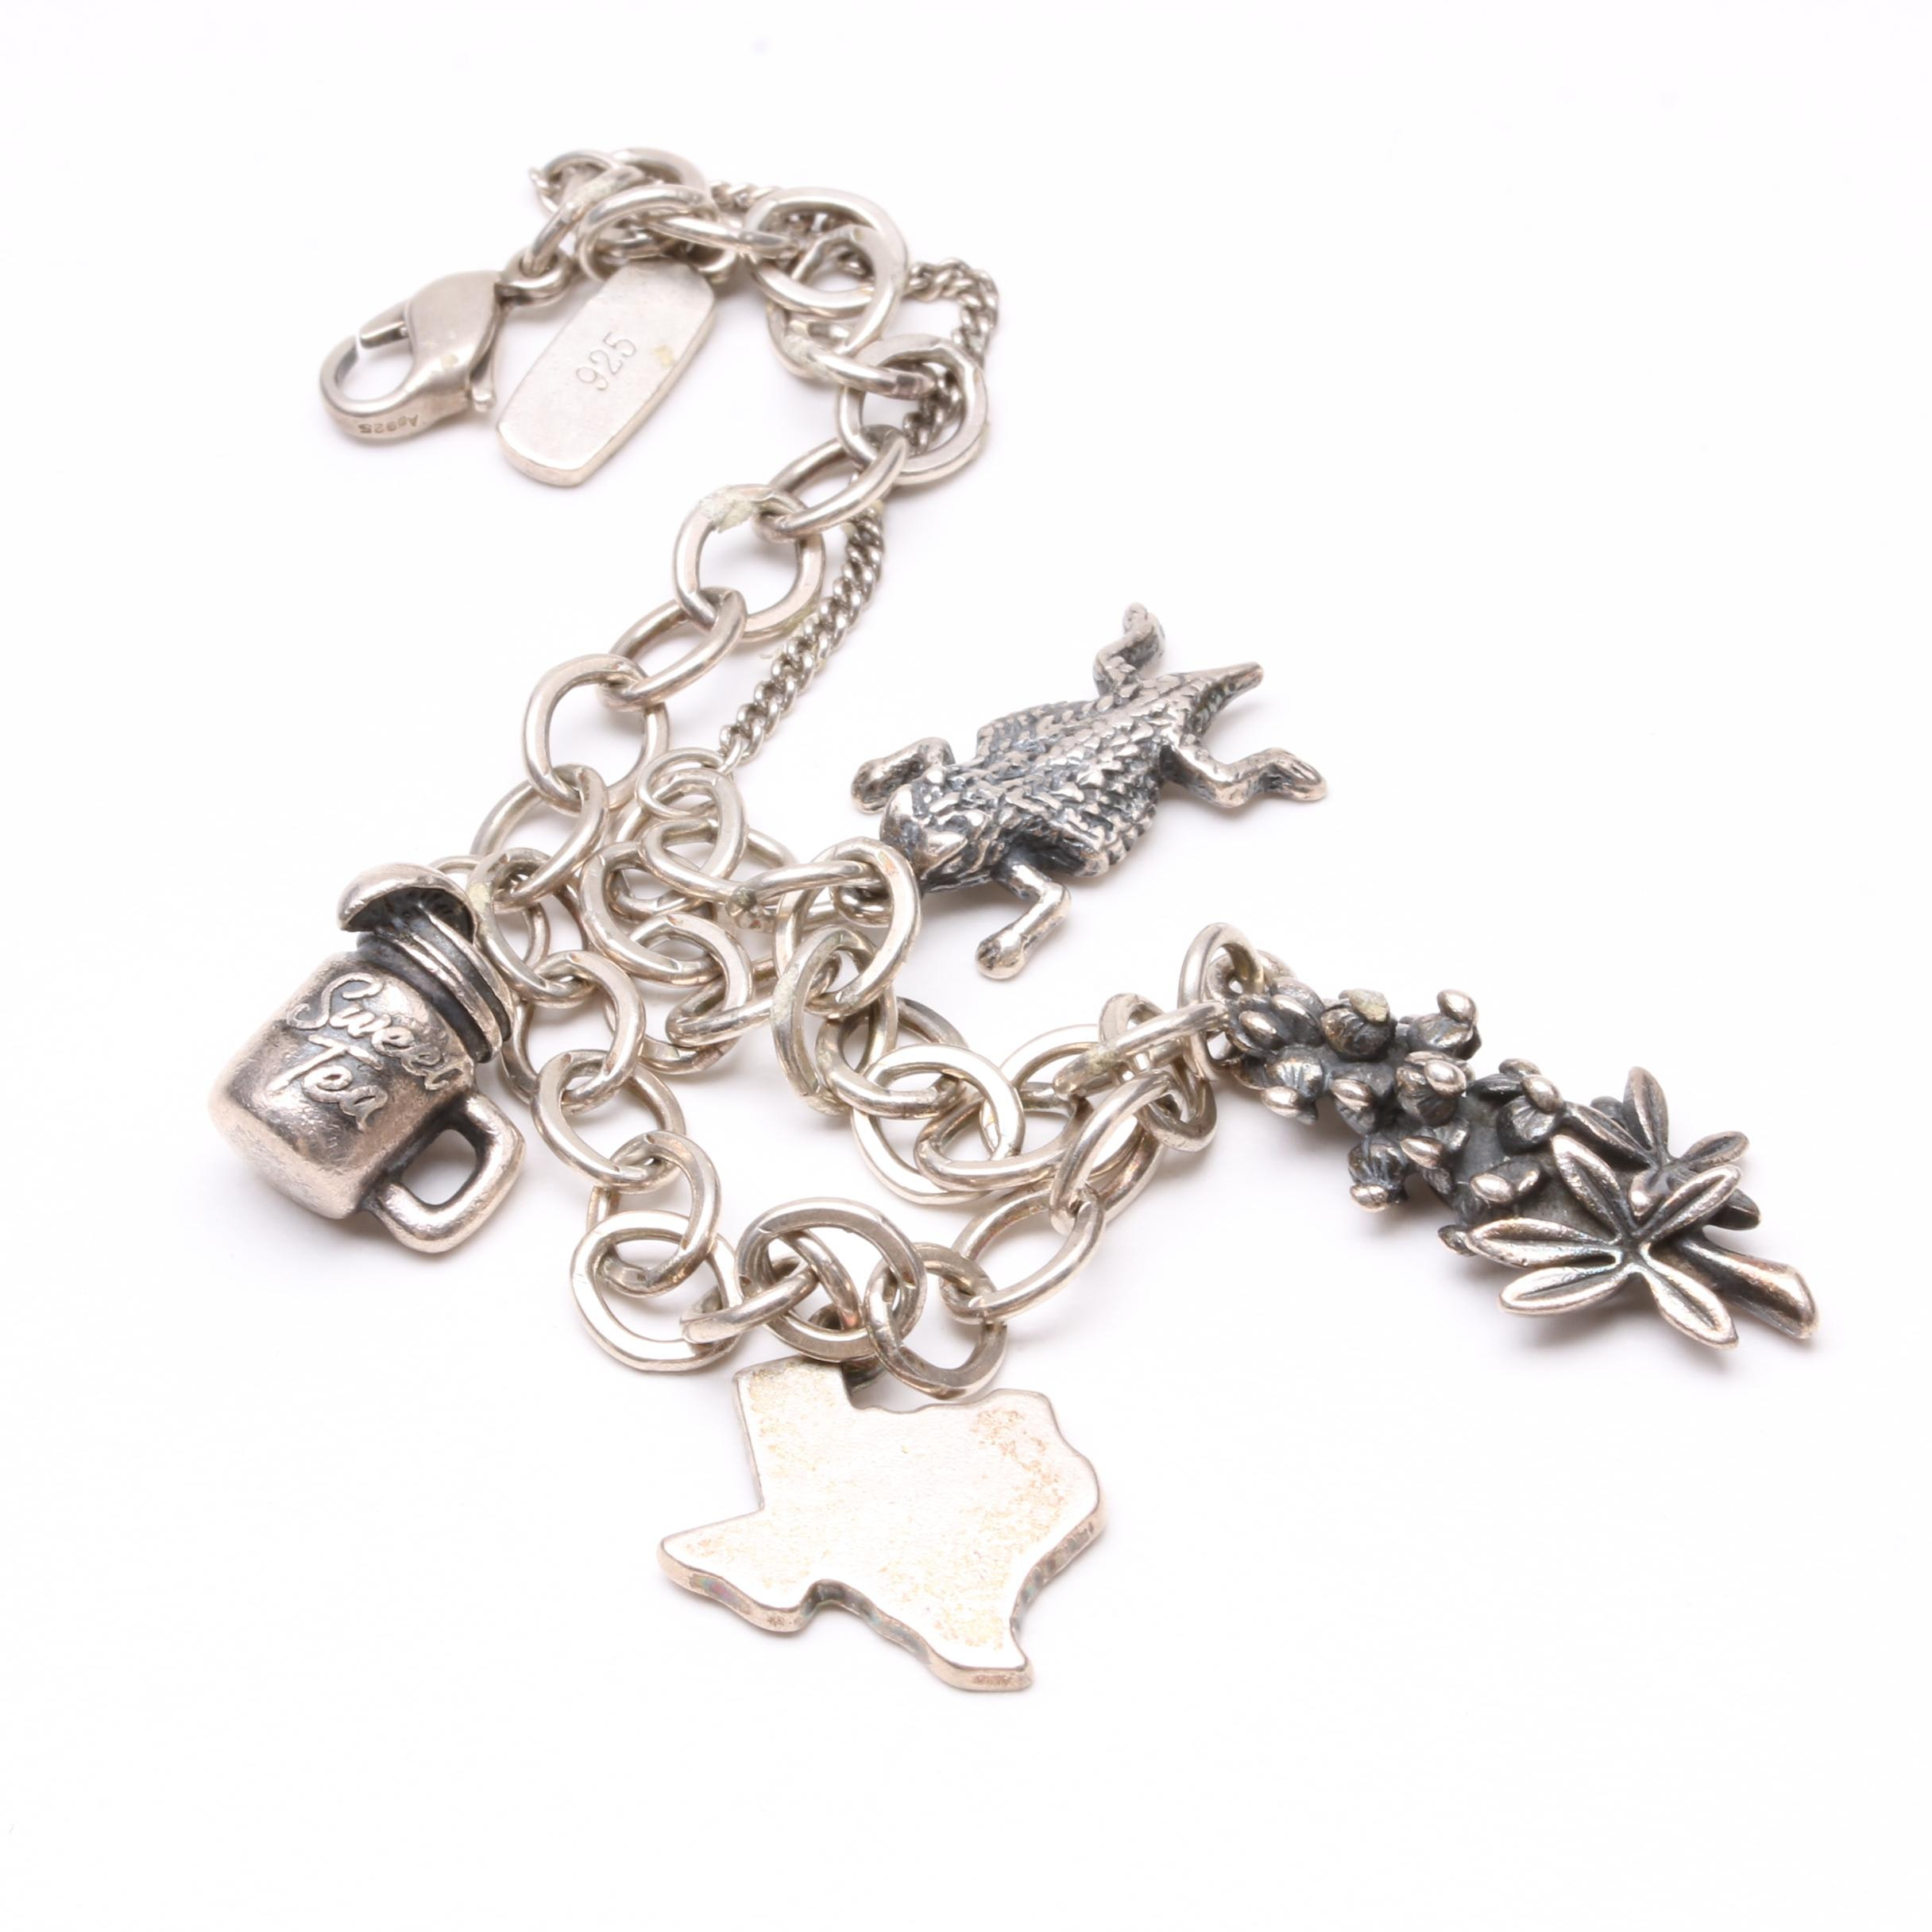 James Avery Sterling Silver Charm Bracelet with Southern Themed Charms